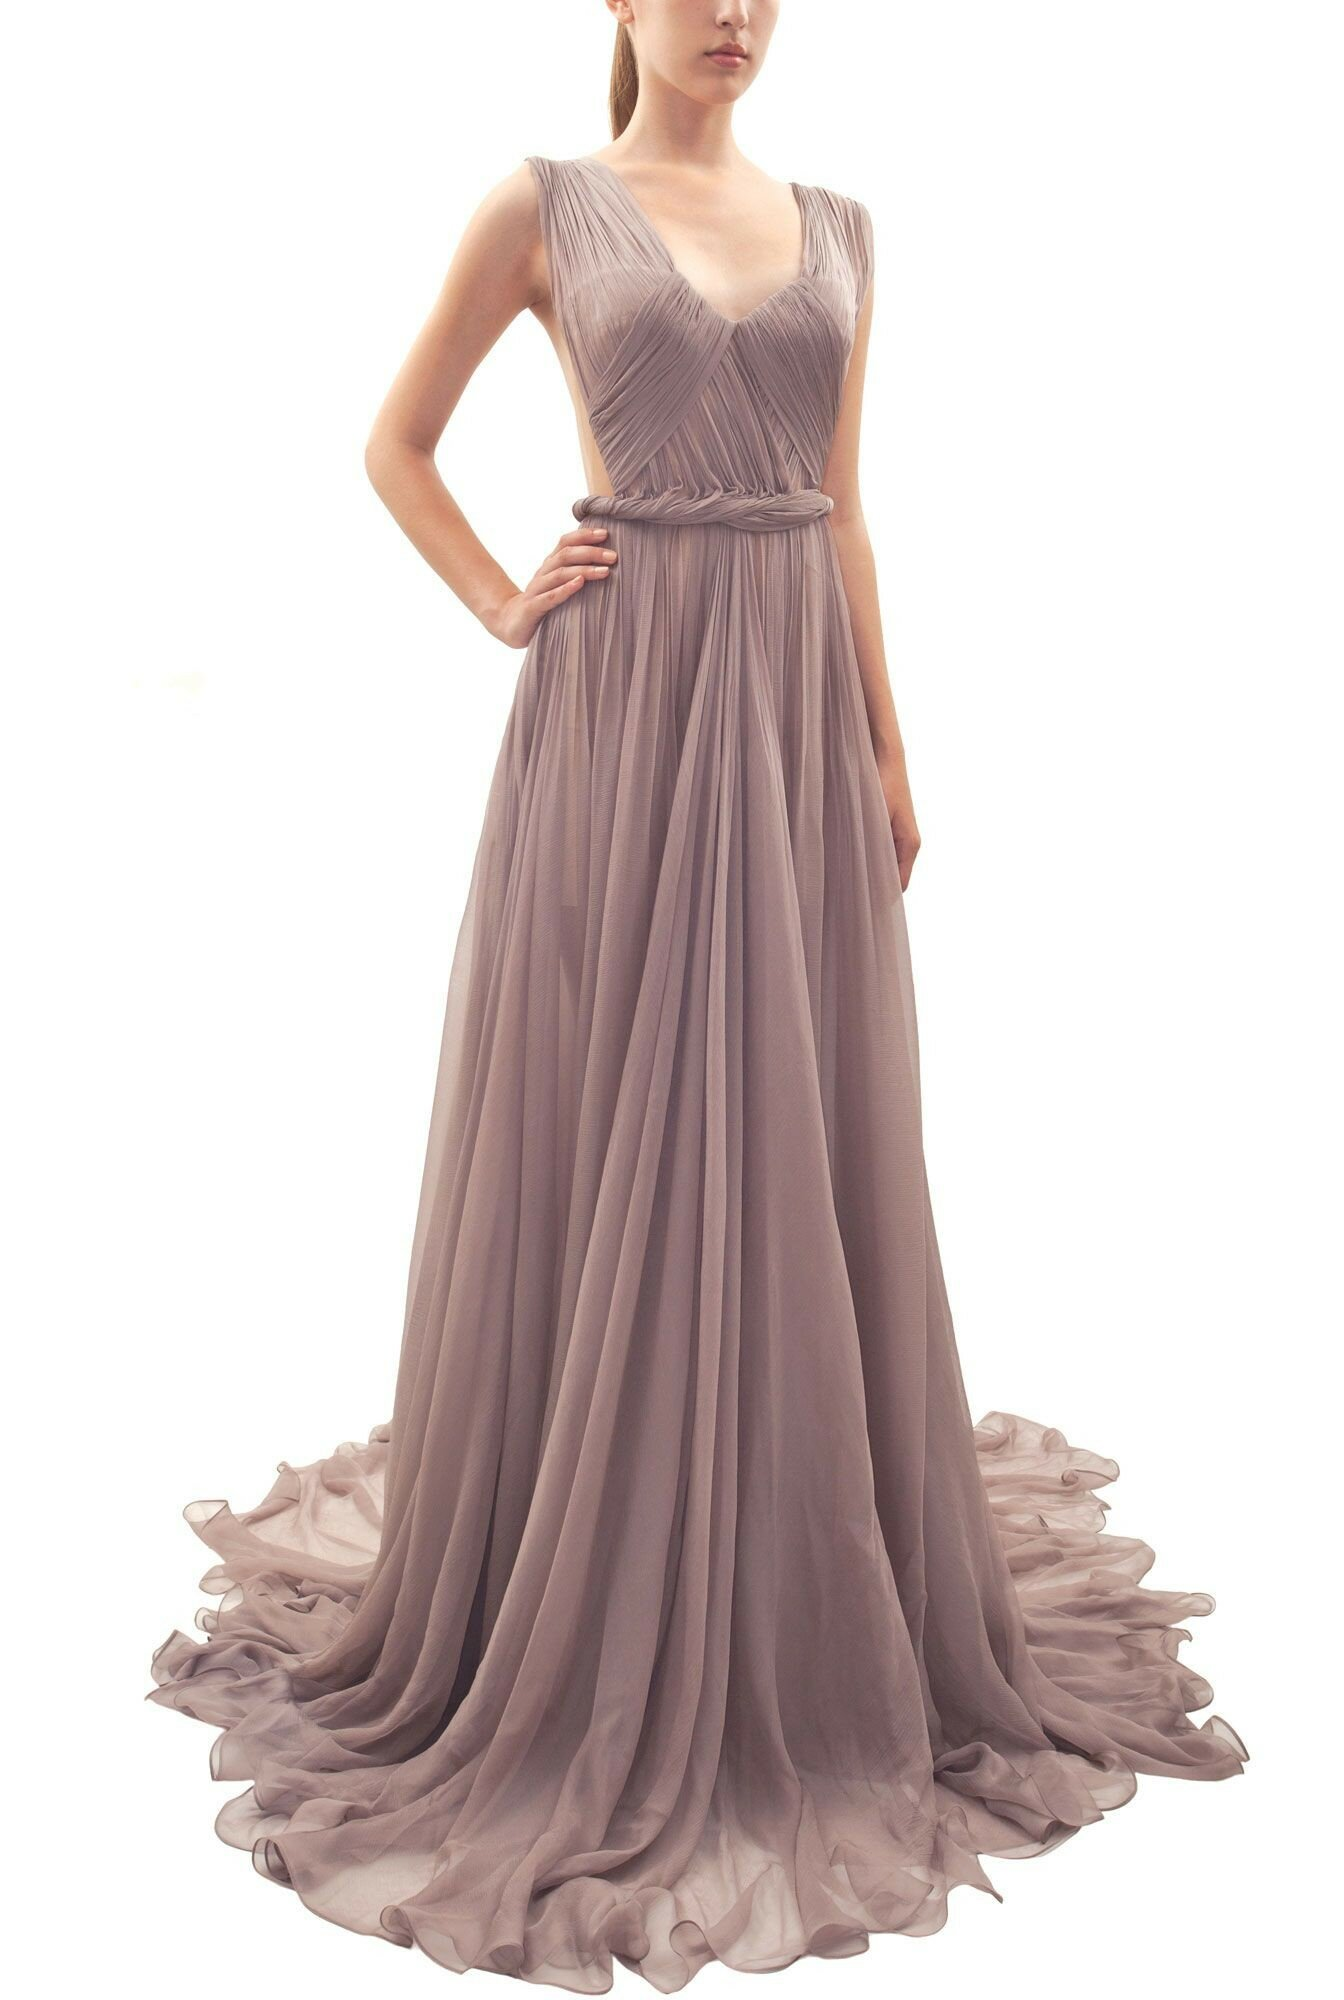 Long evening dresses for wedding photo 2 browse for Dresses for afternoon wedding